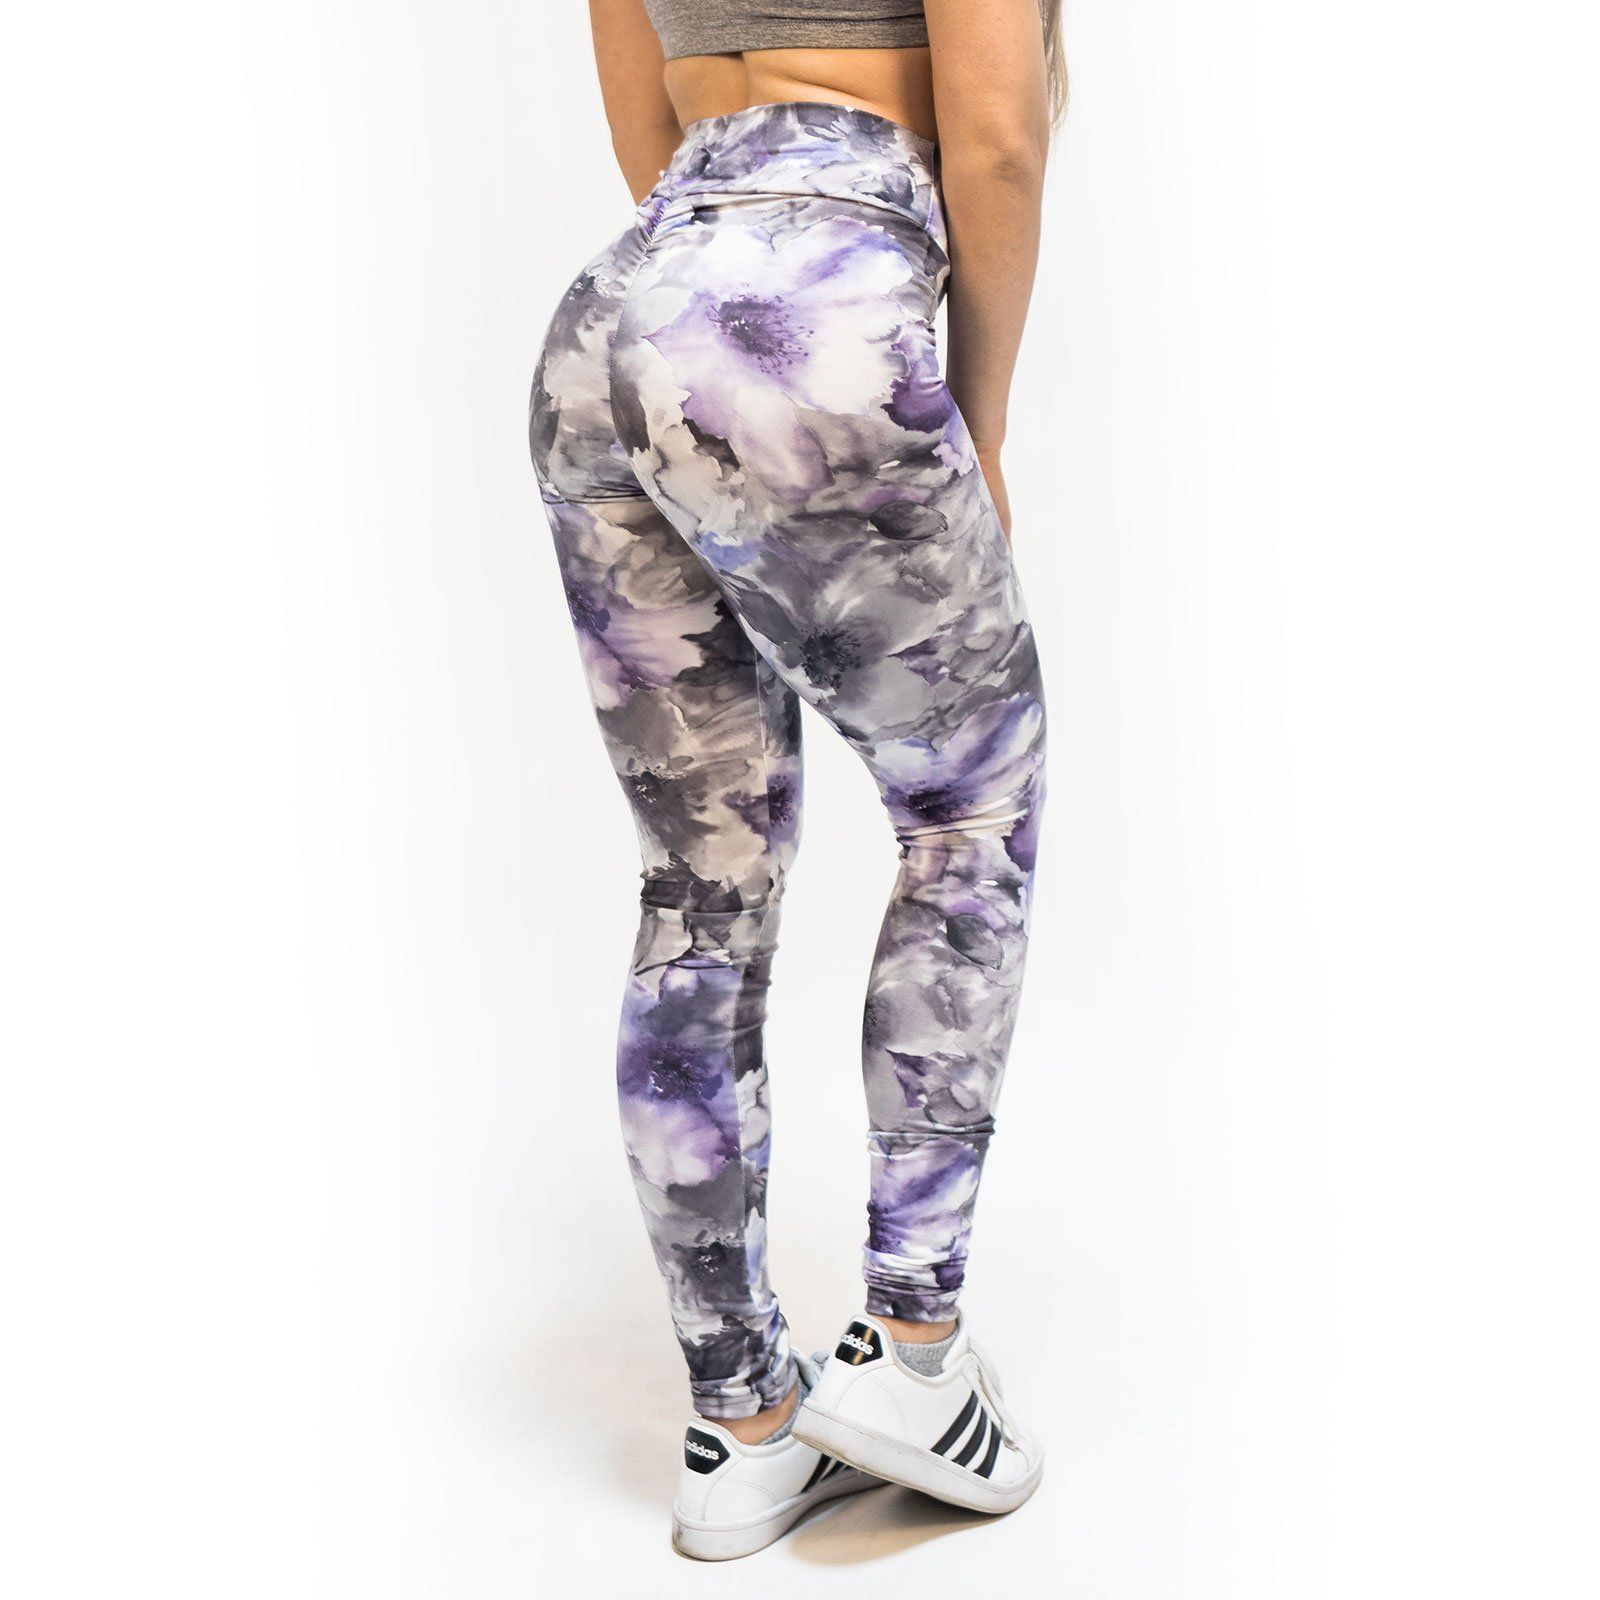 High Waist Moody Floral Leggings